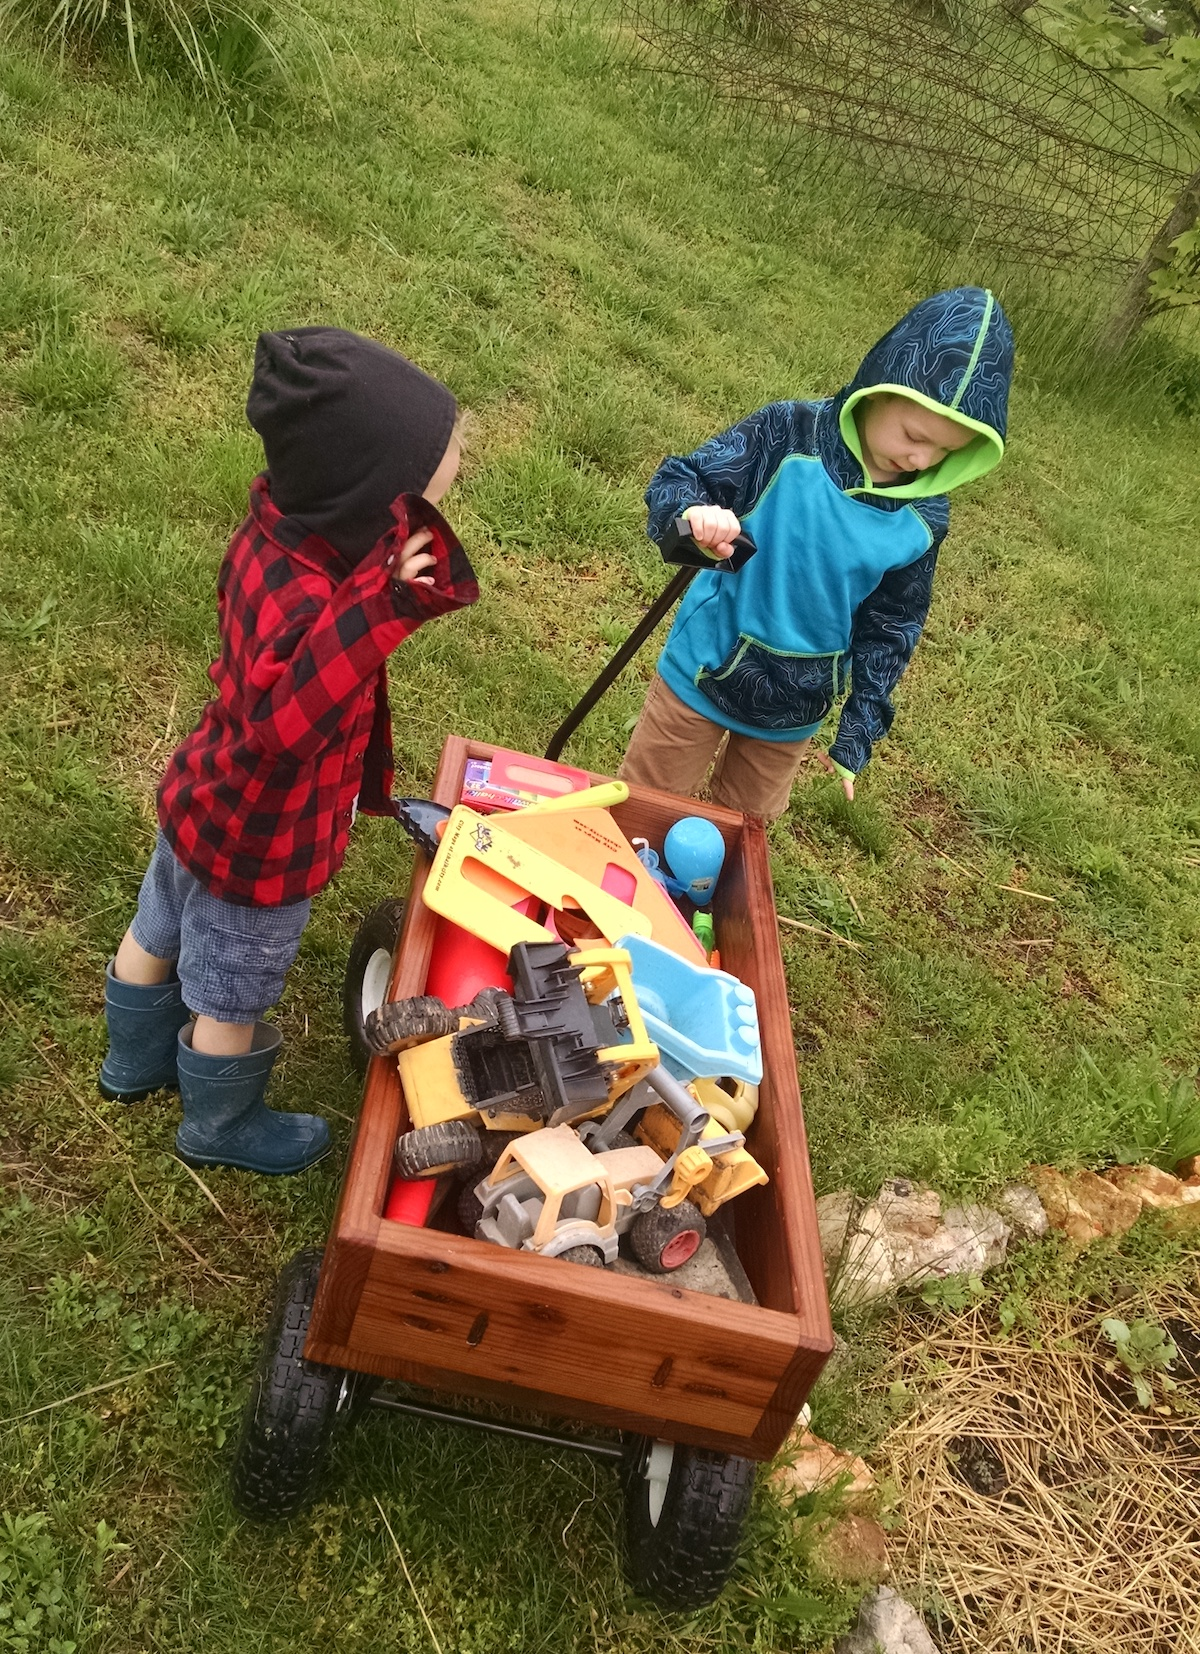 They put the wagon to immediate use! But it's not about the wagon, is it? People . . . that's what it is all about!